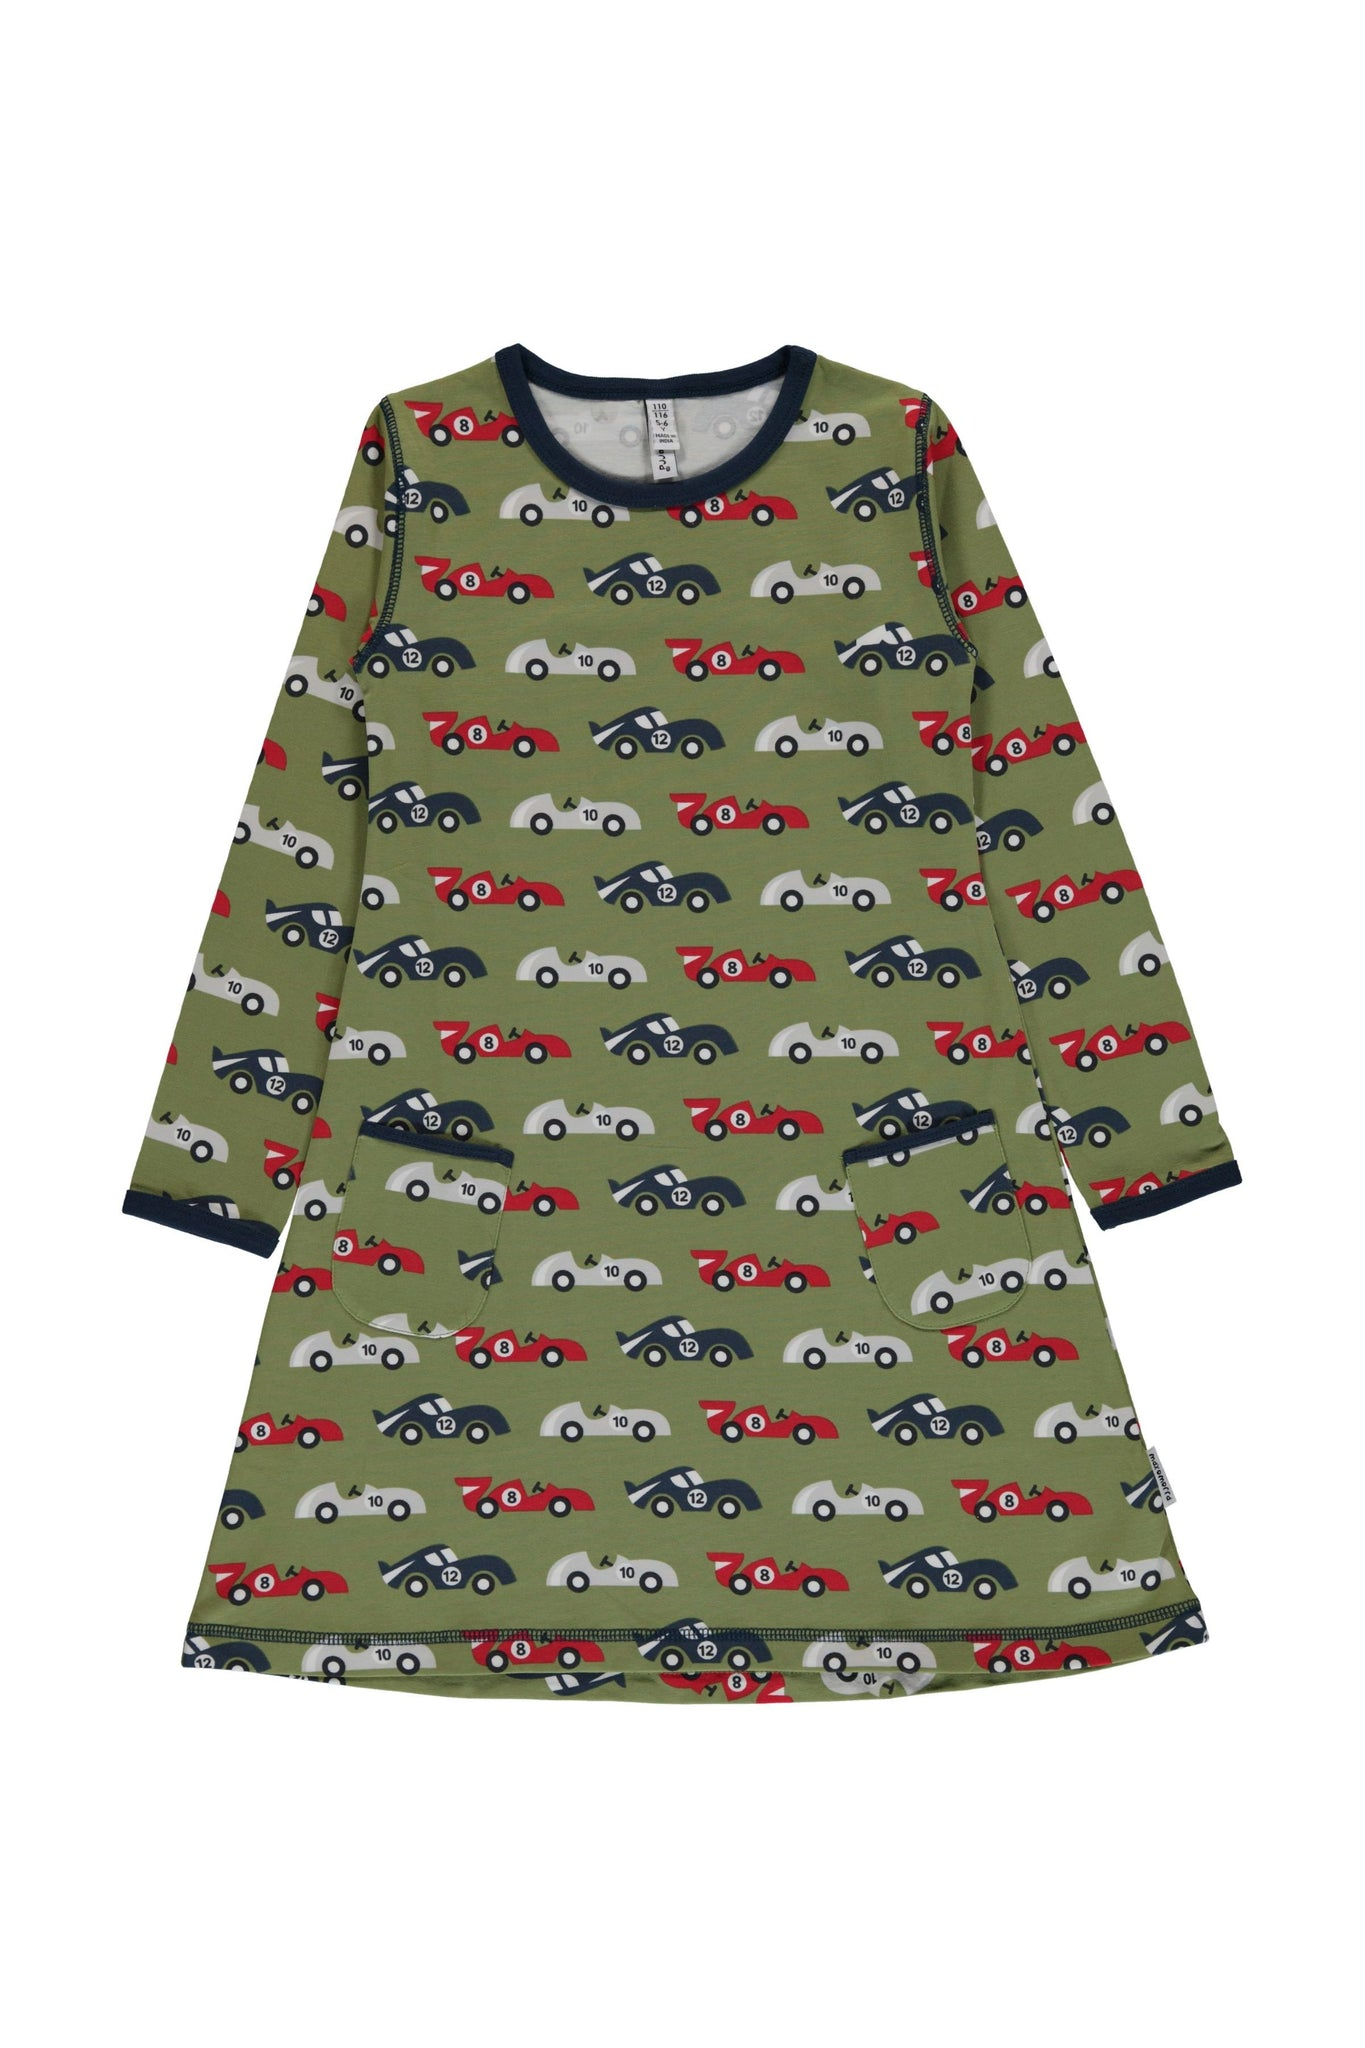 Race Cars - Long - Sleeve - Dress - Maxomorra Fashion - Snugglefox